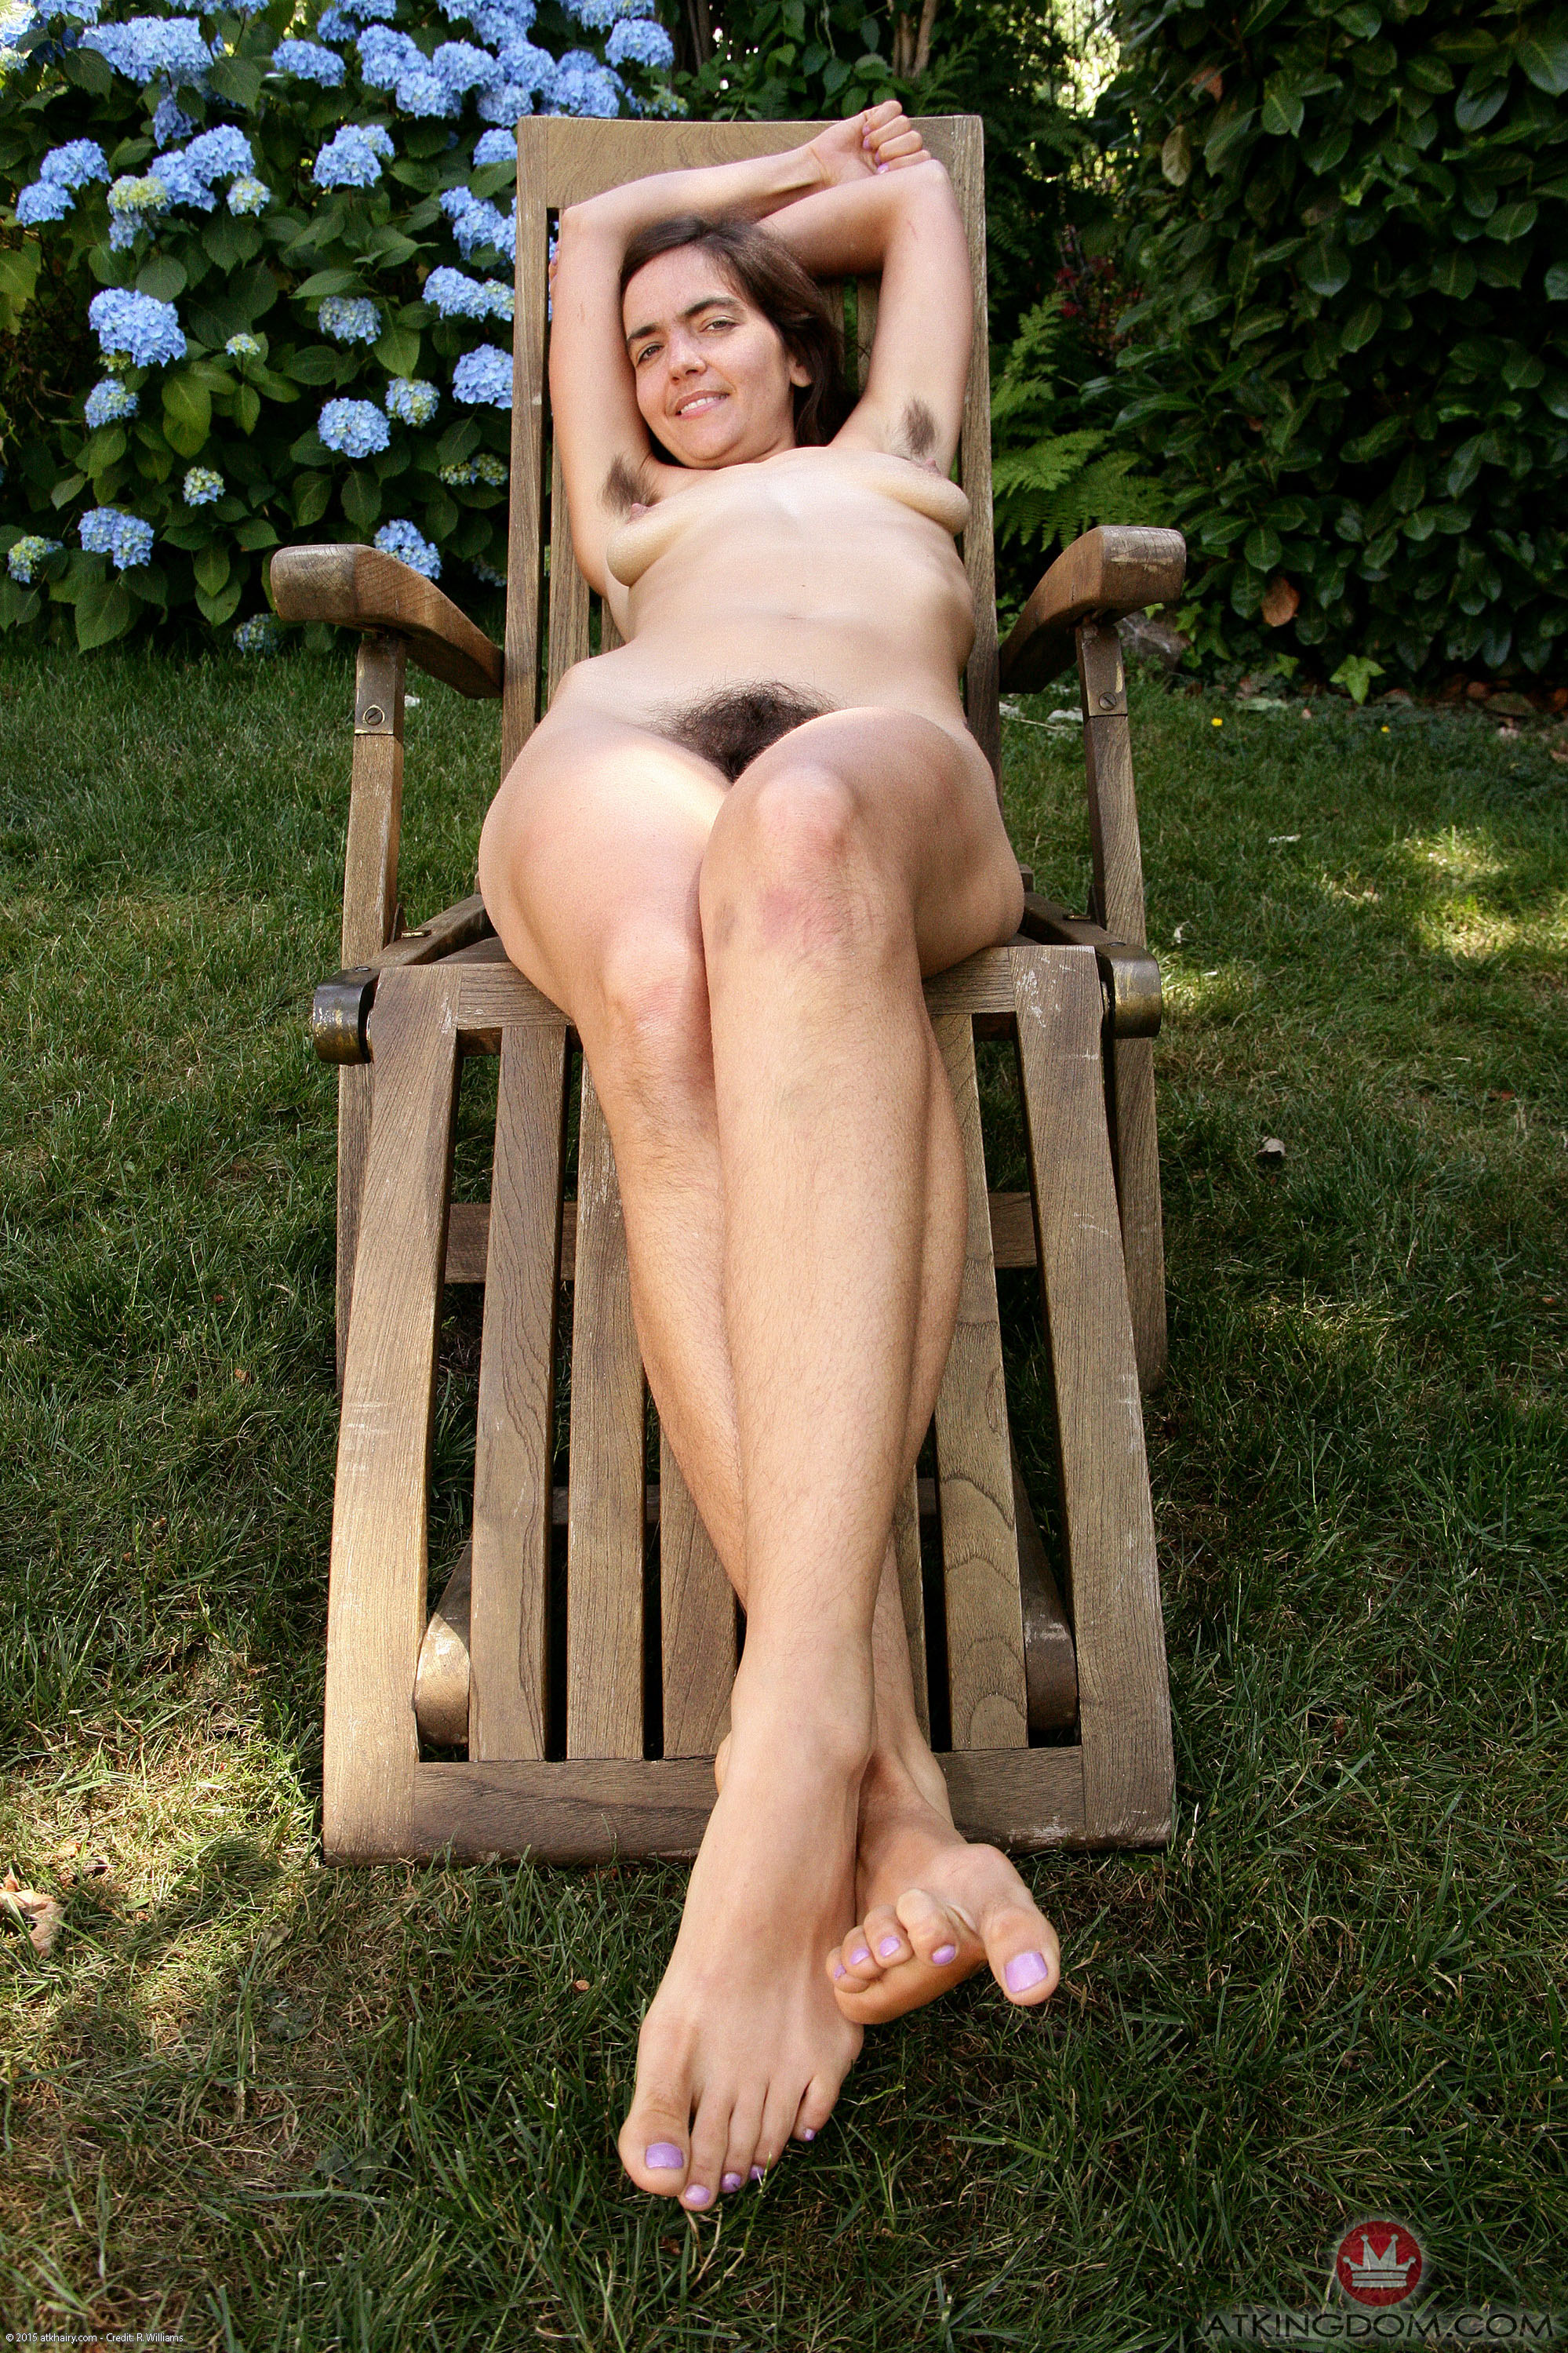 http://www.atkmodels.com/hairy/img/content/150702_6.jpg